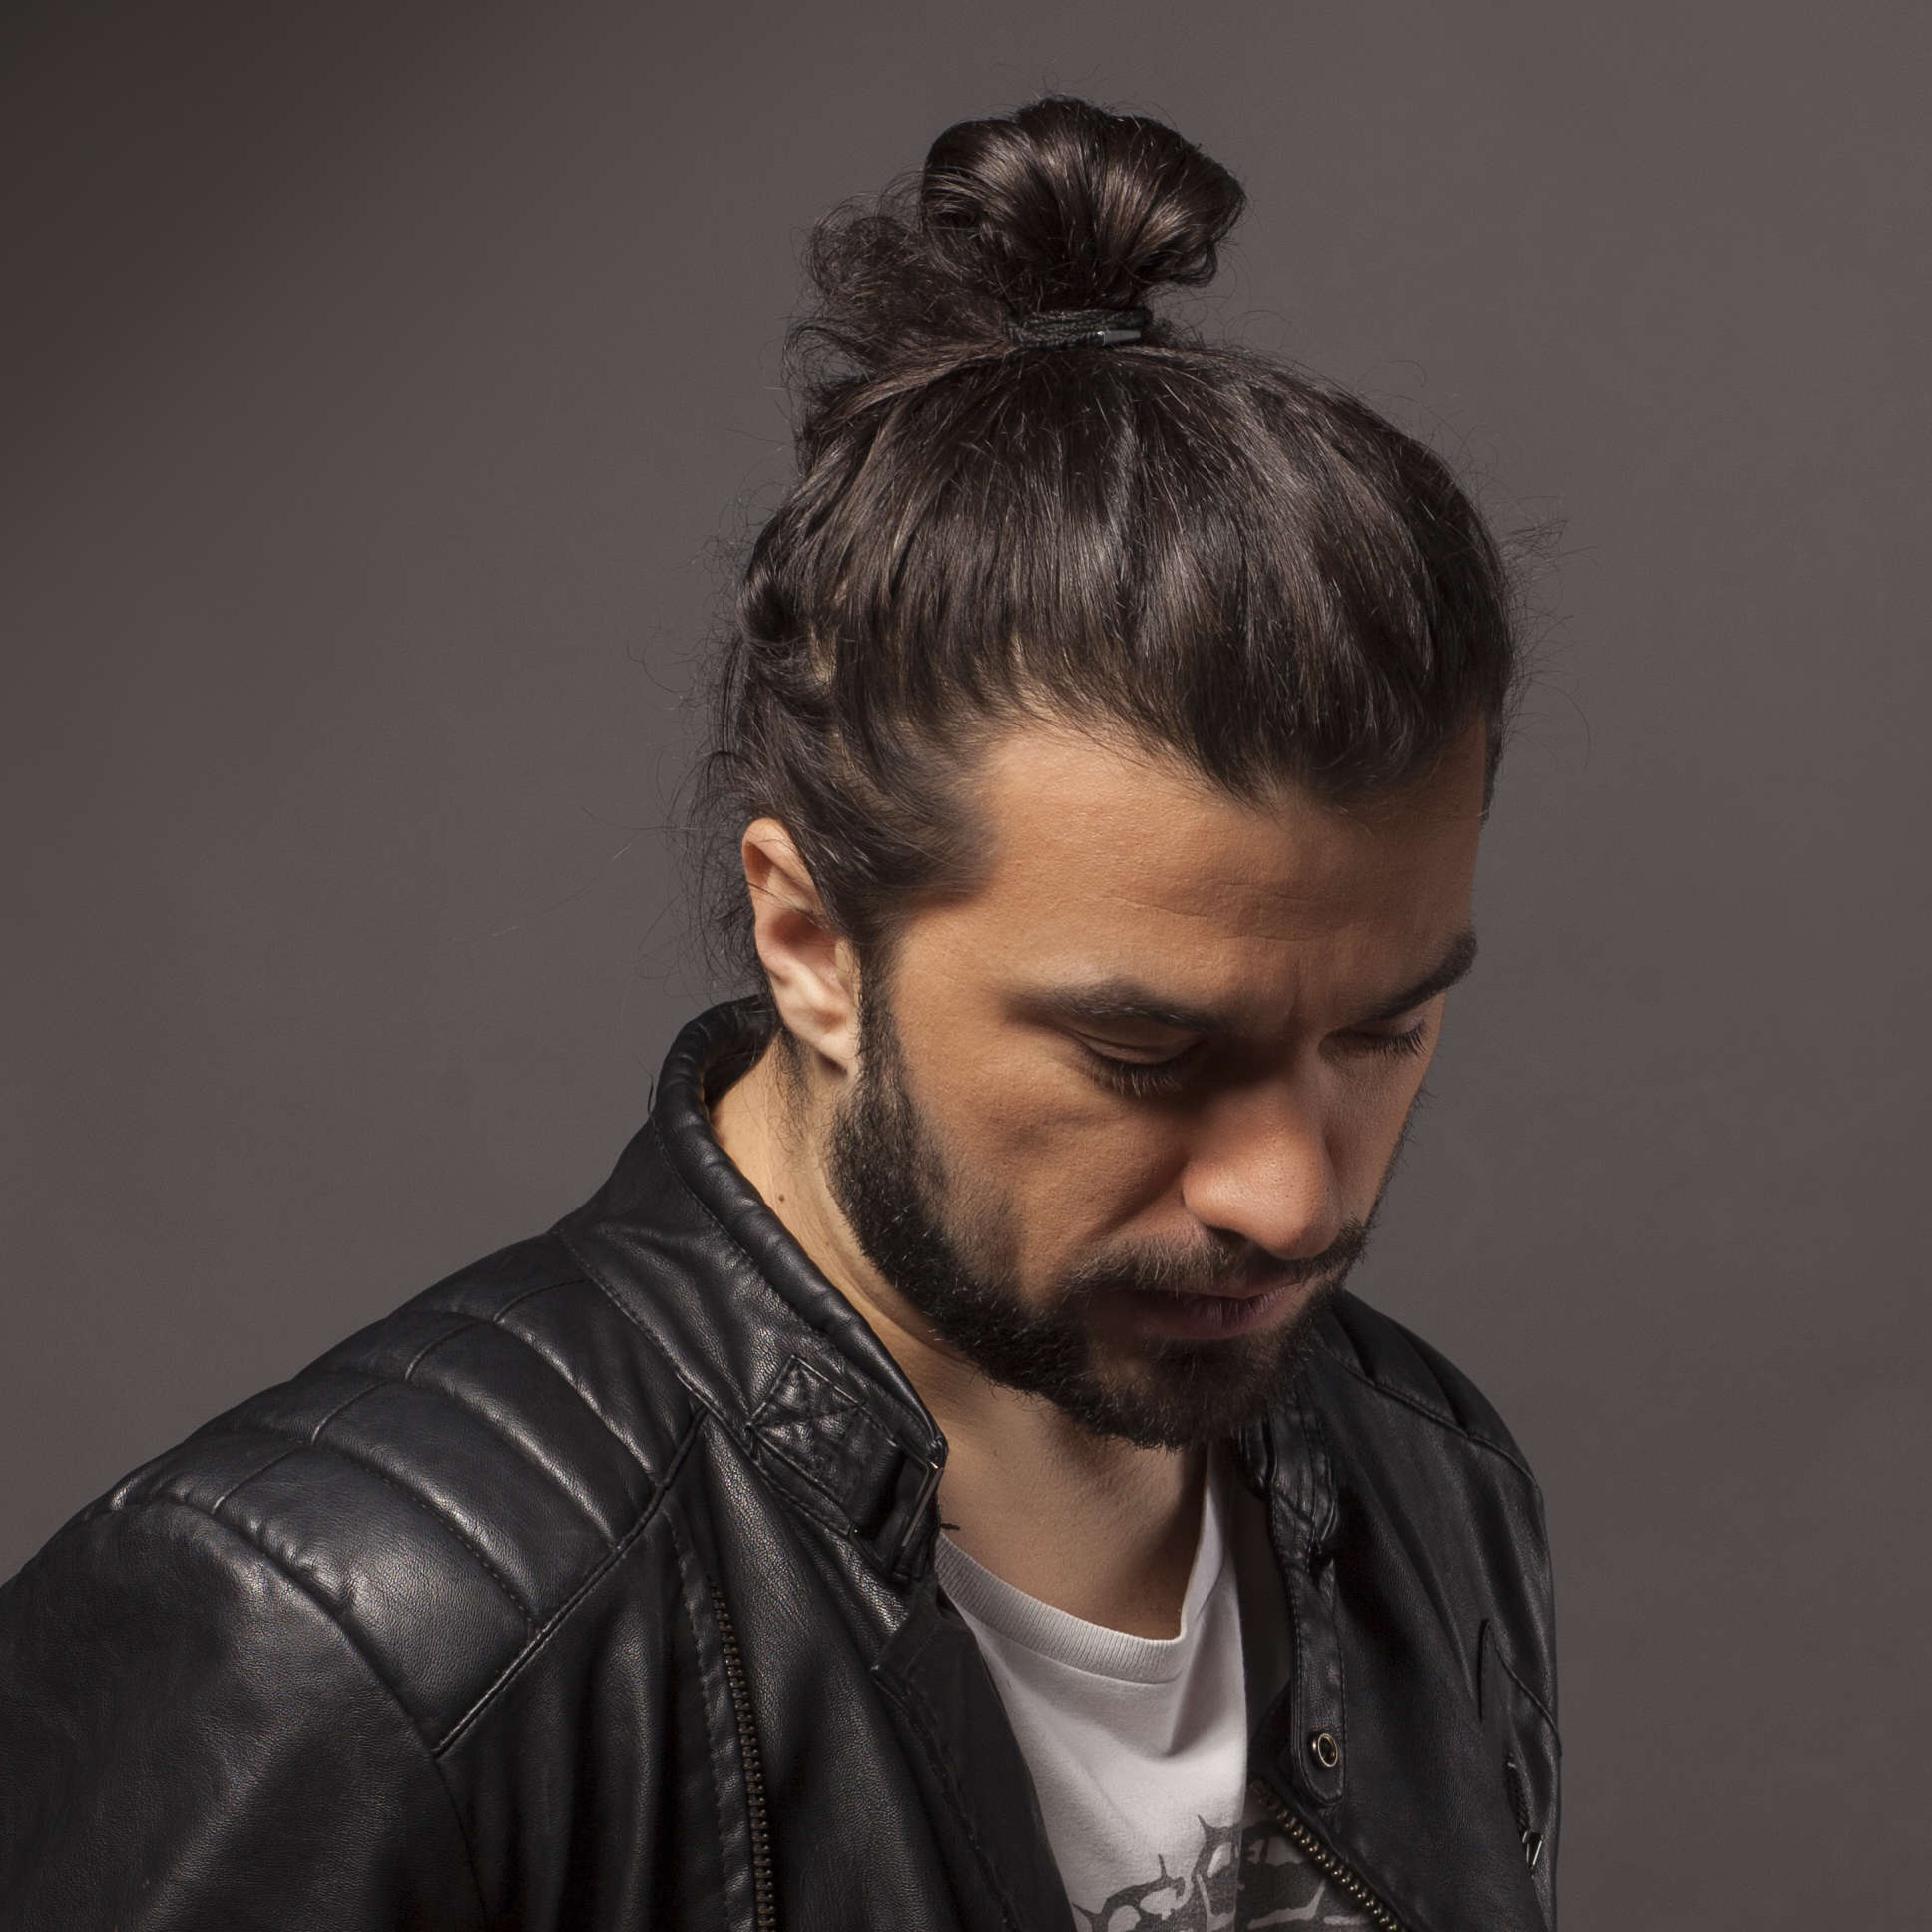 7 Types of Man Bun Hairstyles | Gallery + How To